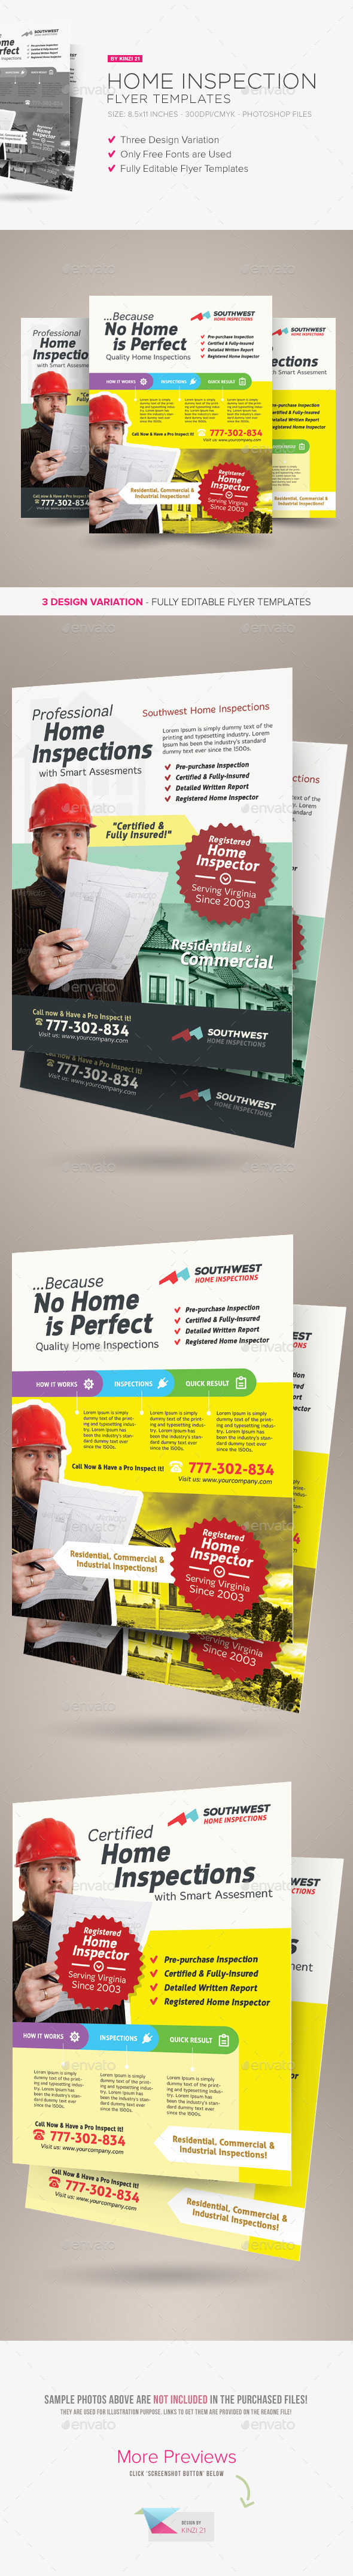 Home Inspection Flyer Templates - Corporate Flyers